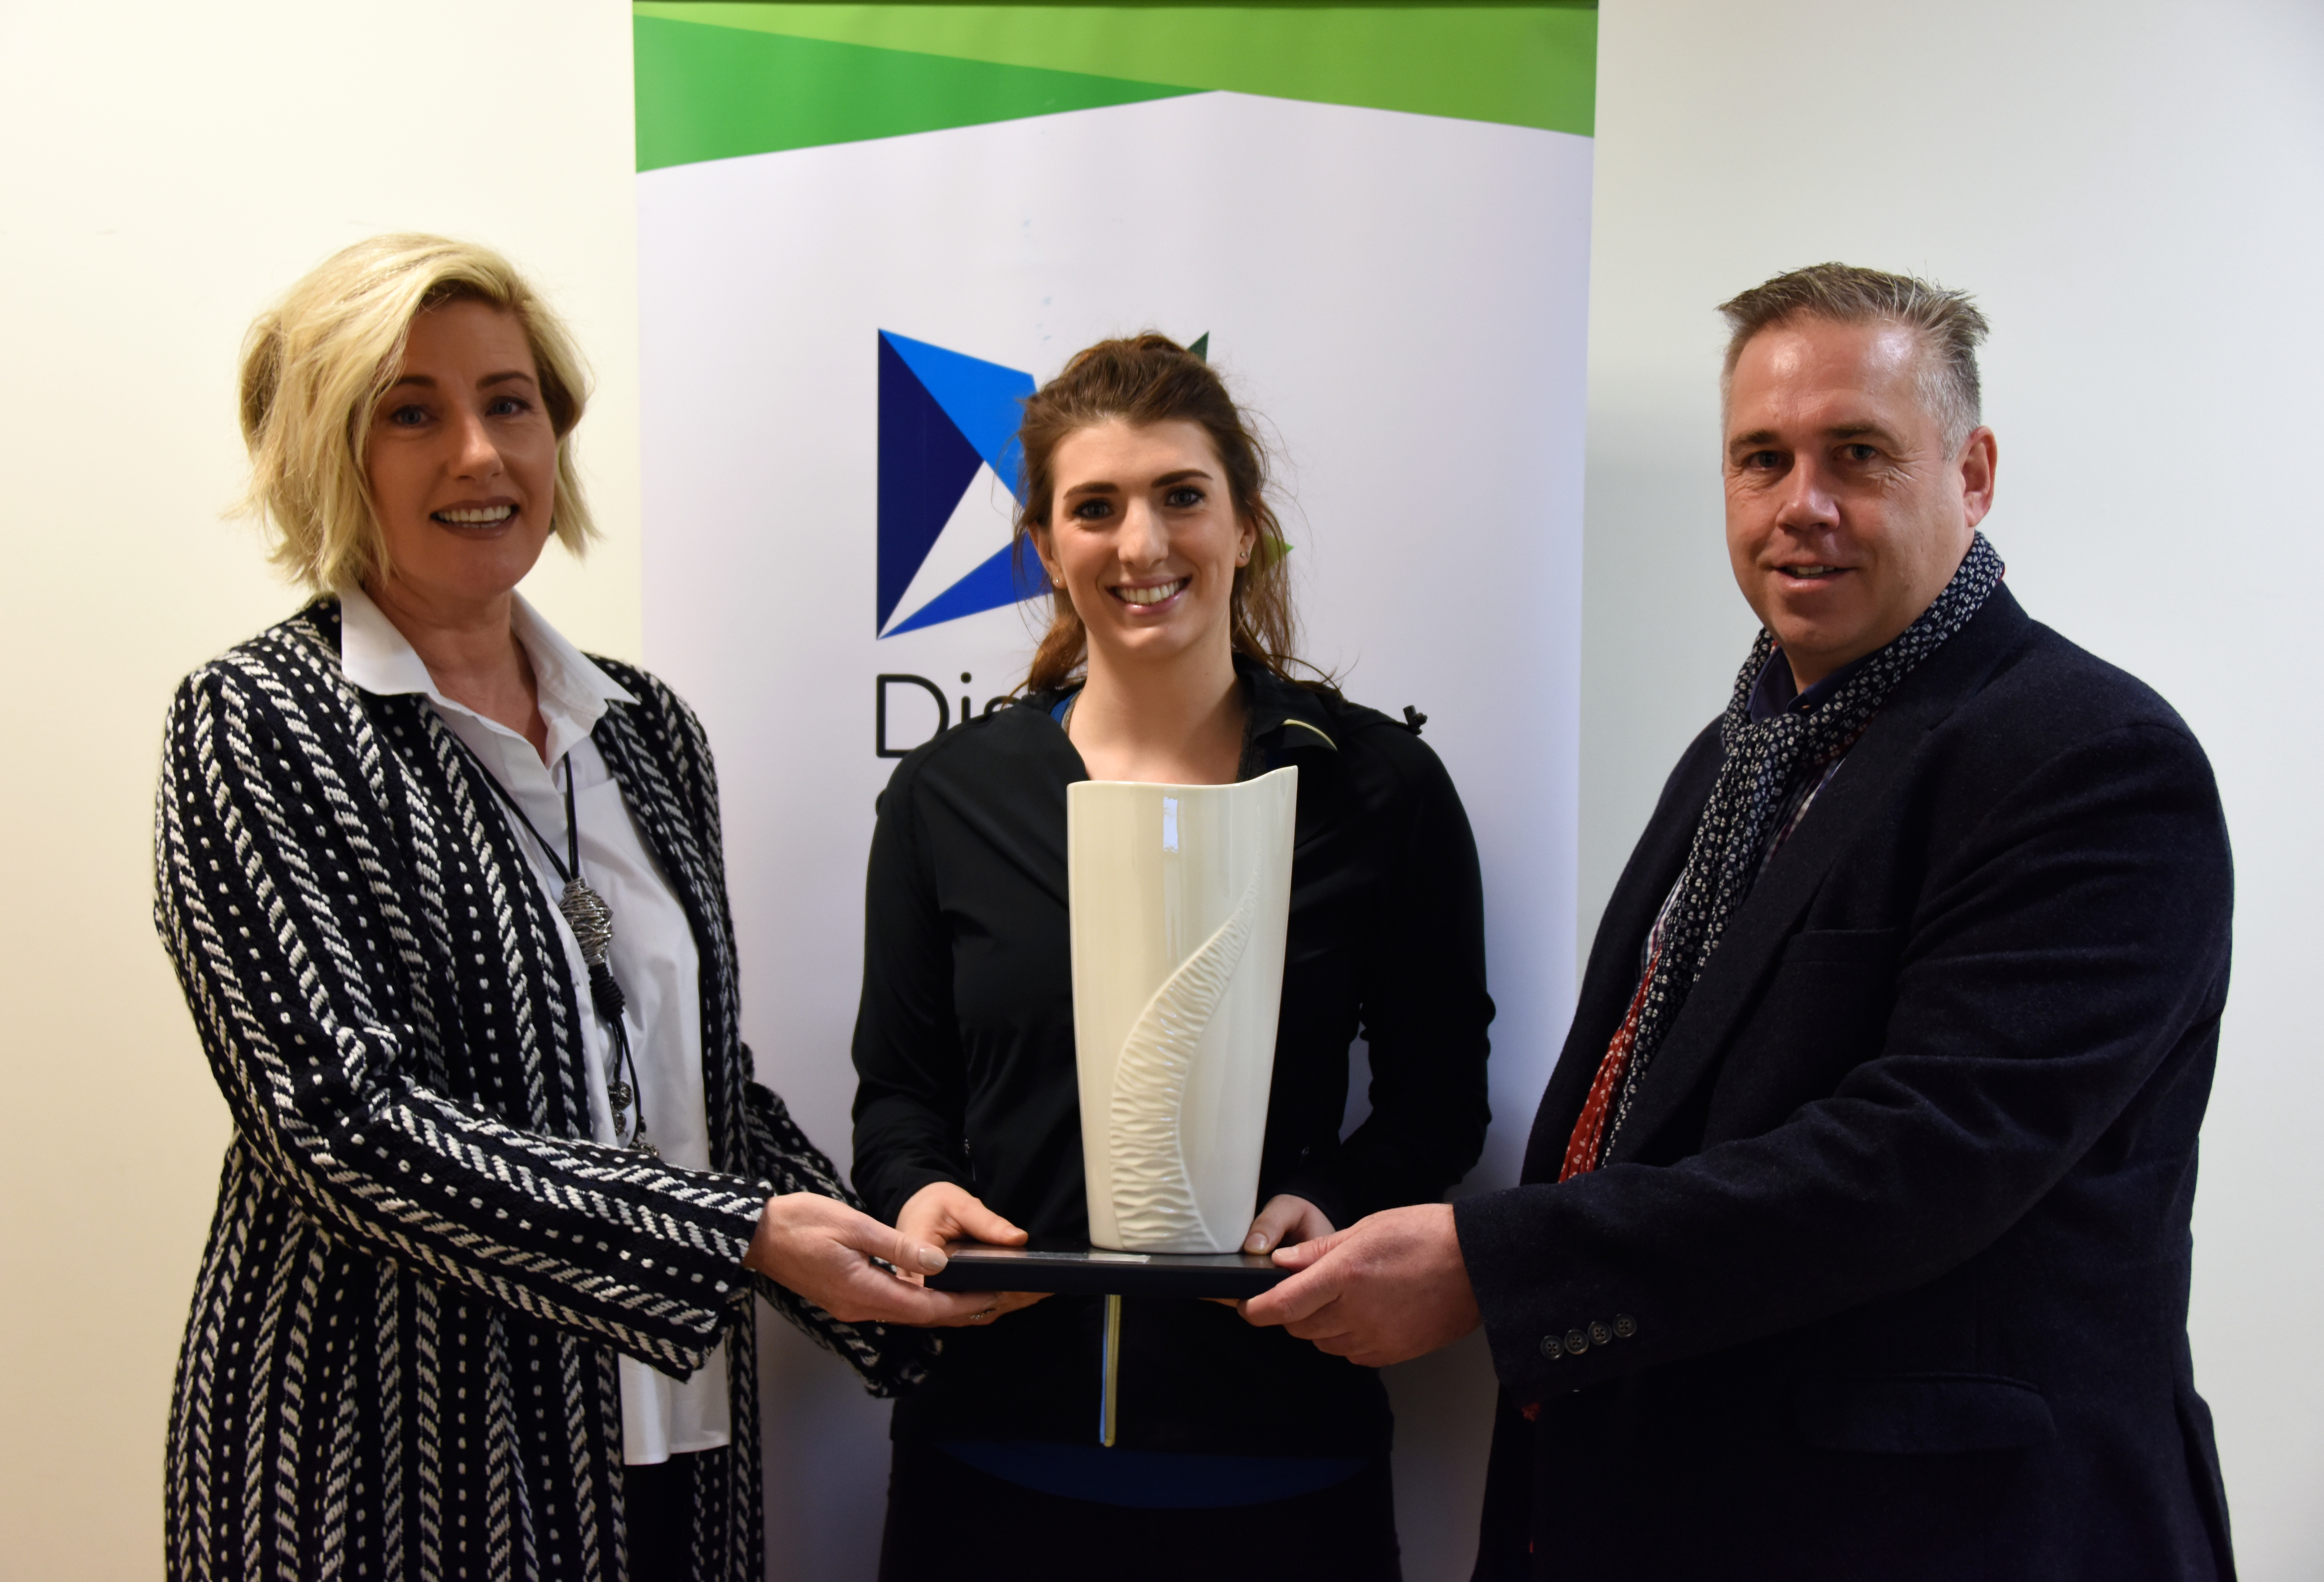 An Image of Bethany Firth MBE at SINI receiving her award from Brian and Sharon McFarland from McFarland Associates